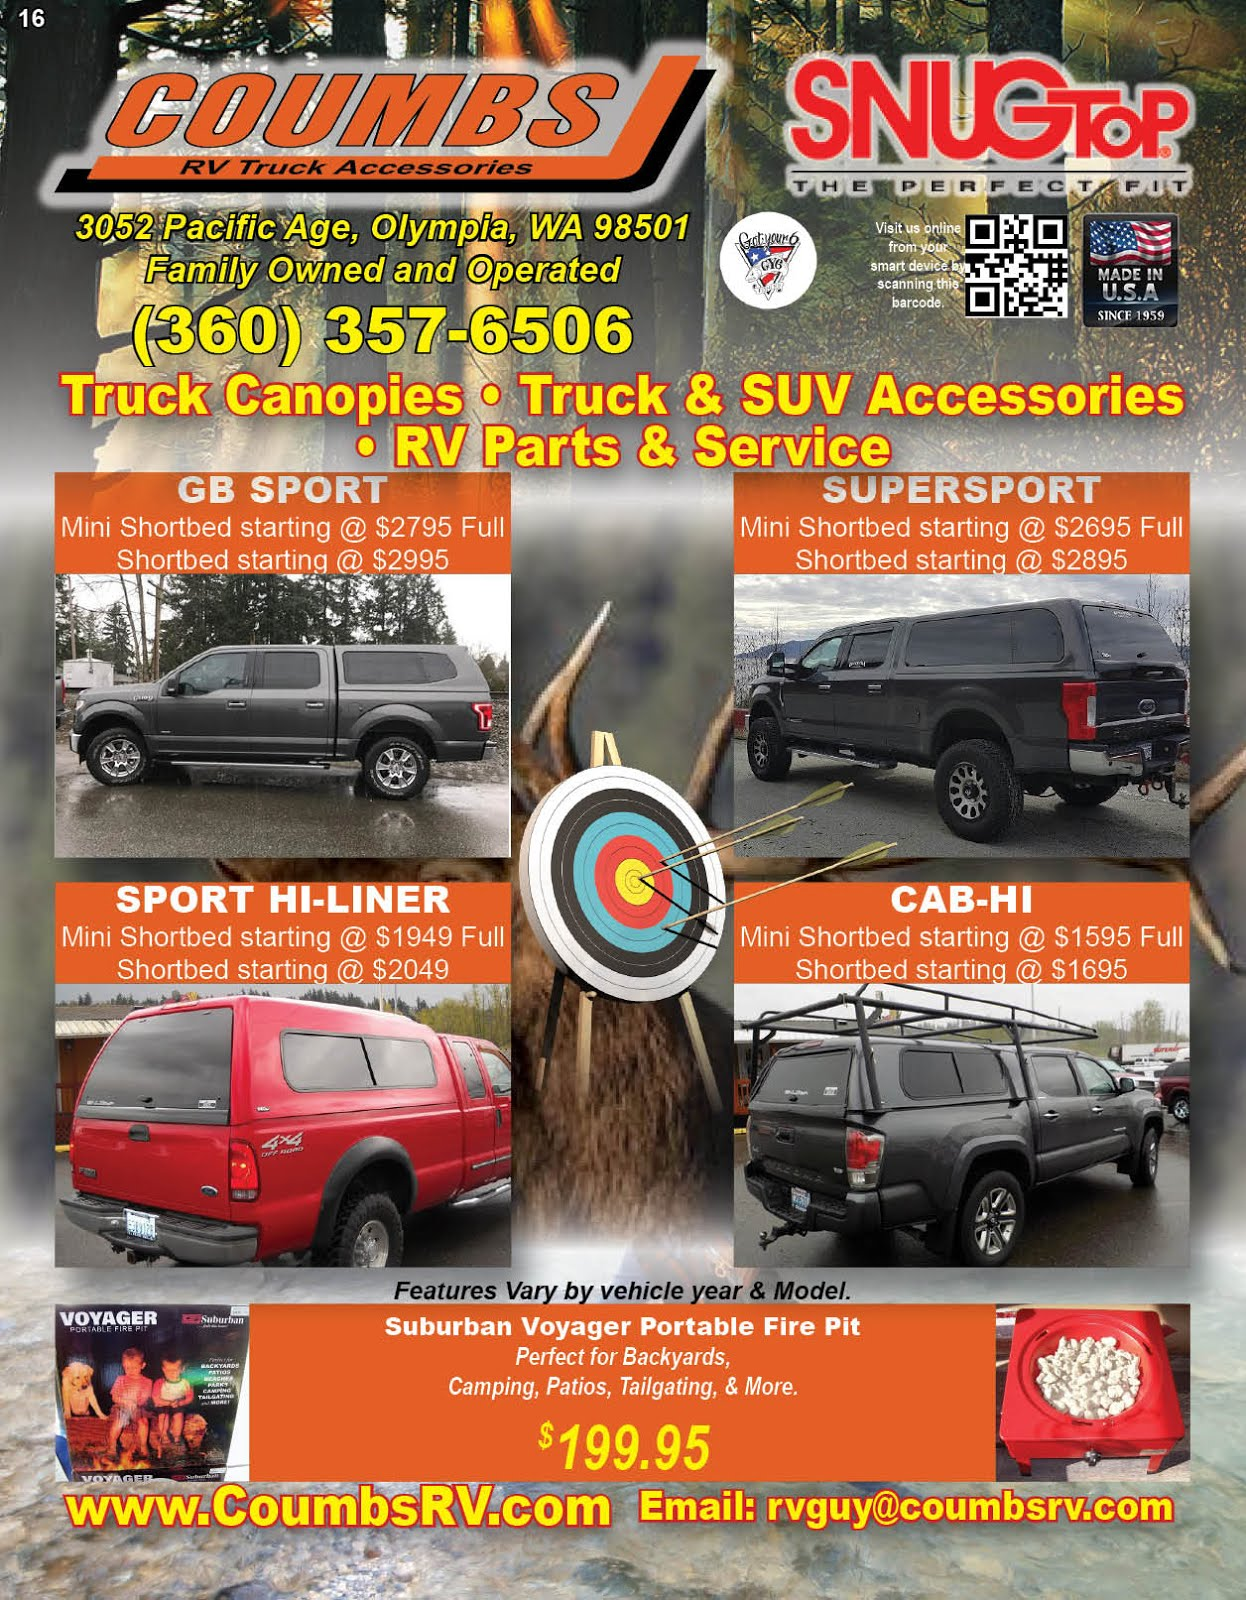 Coumbs RV Truck Accessories